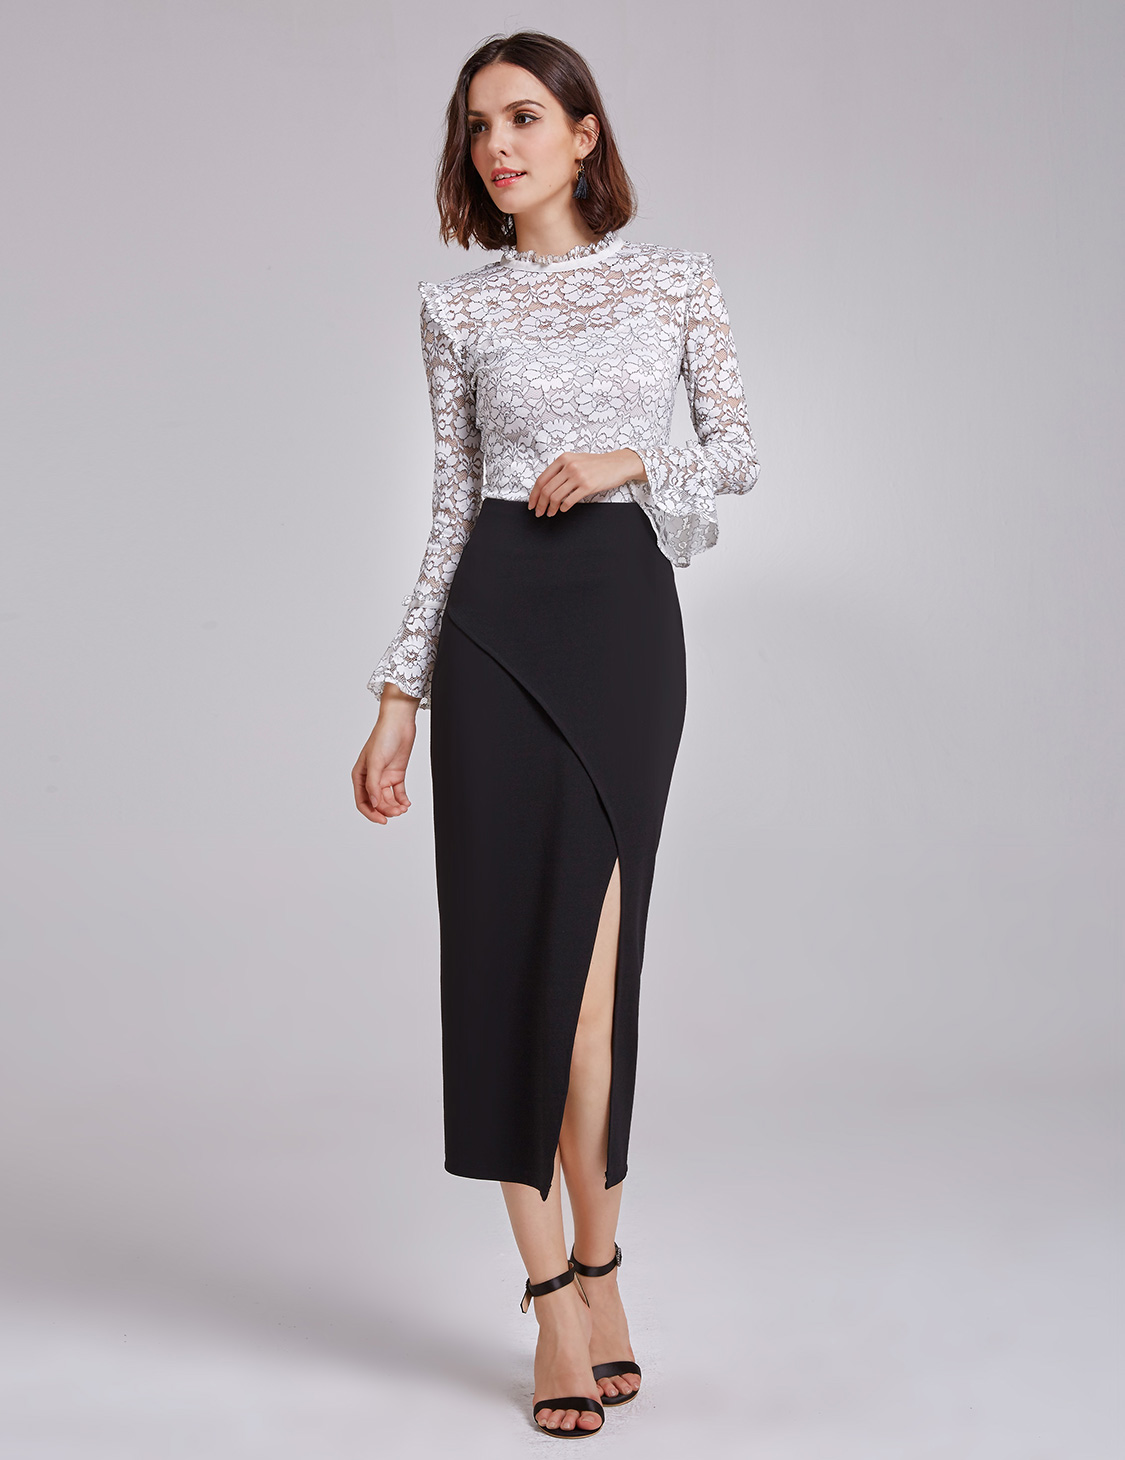 Alisa-Pan-New-Lady-Solid-Sexy-Pencil-Skirt-High-Waist-Casual-Black-Skirt-01148